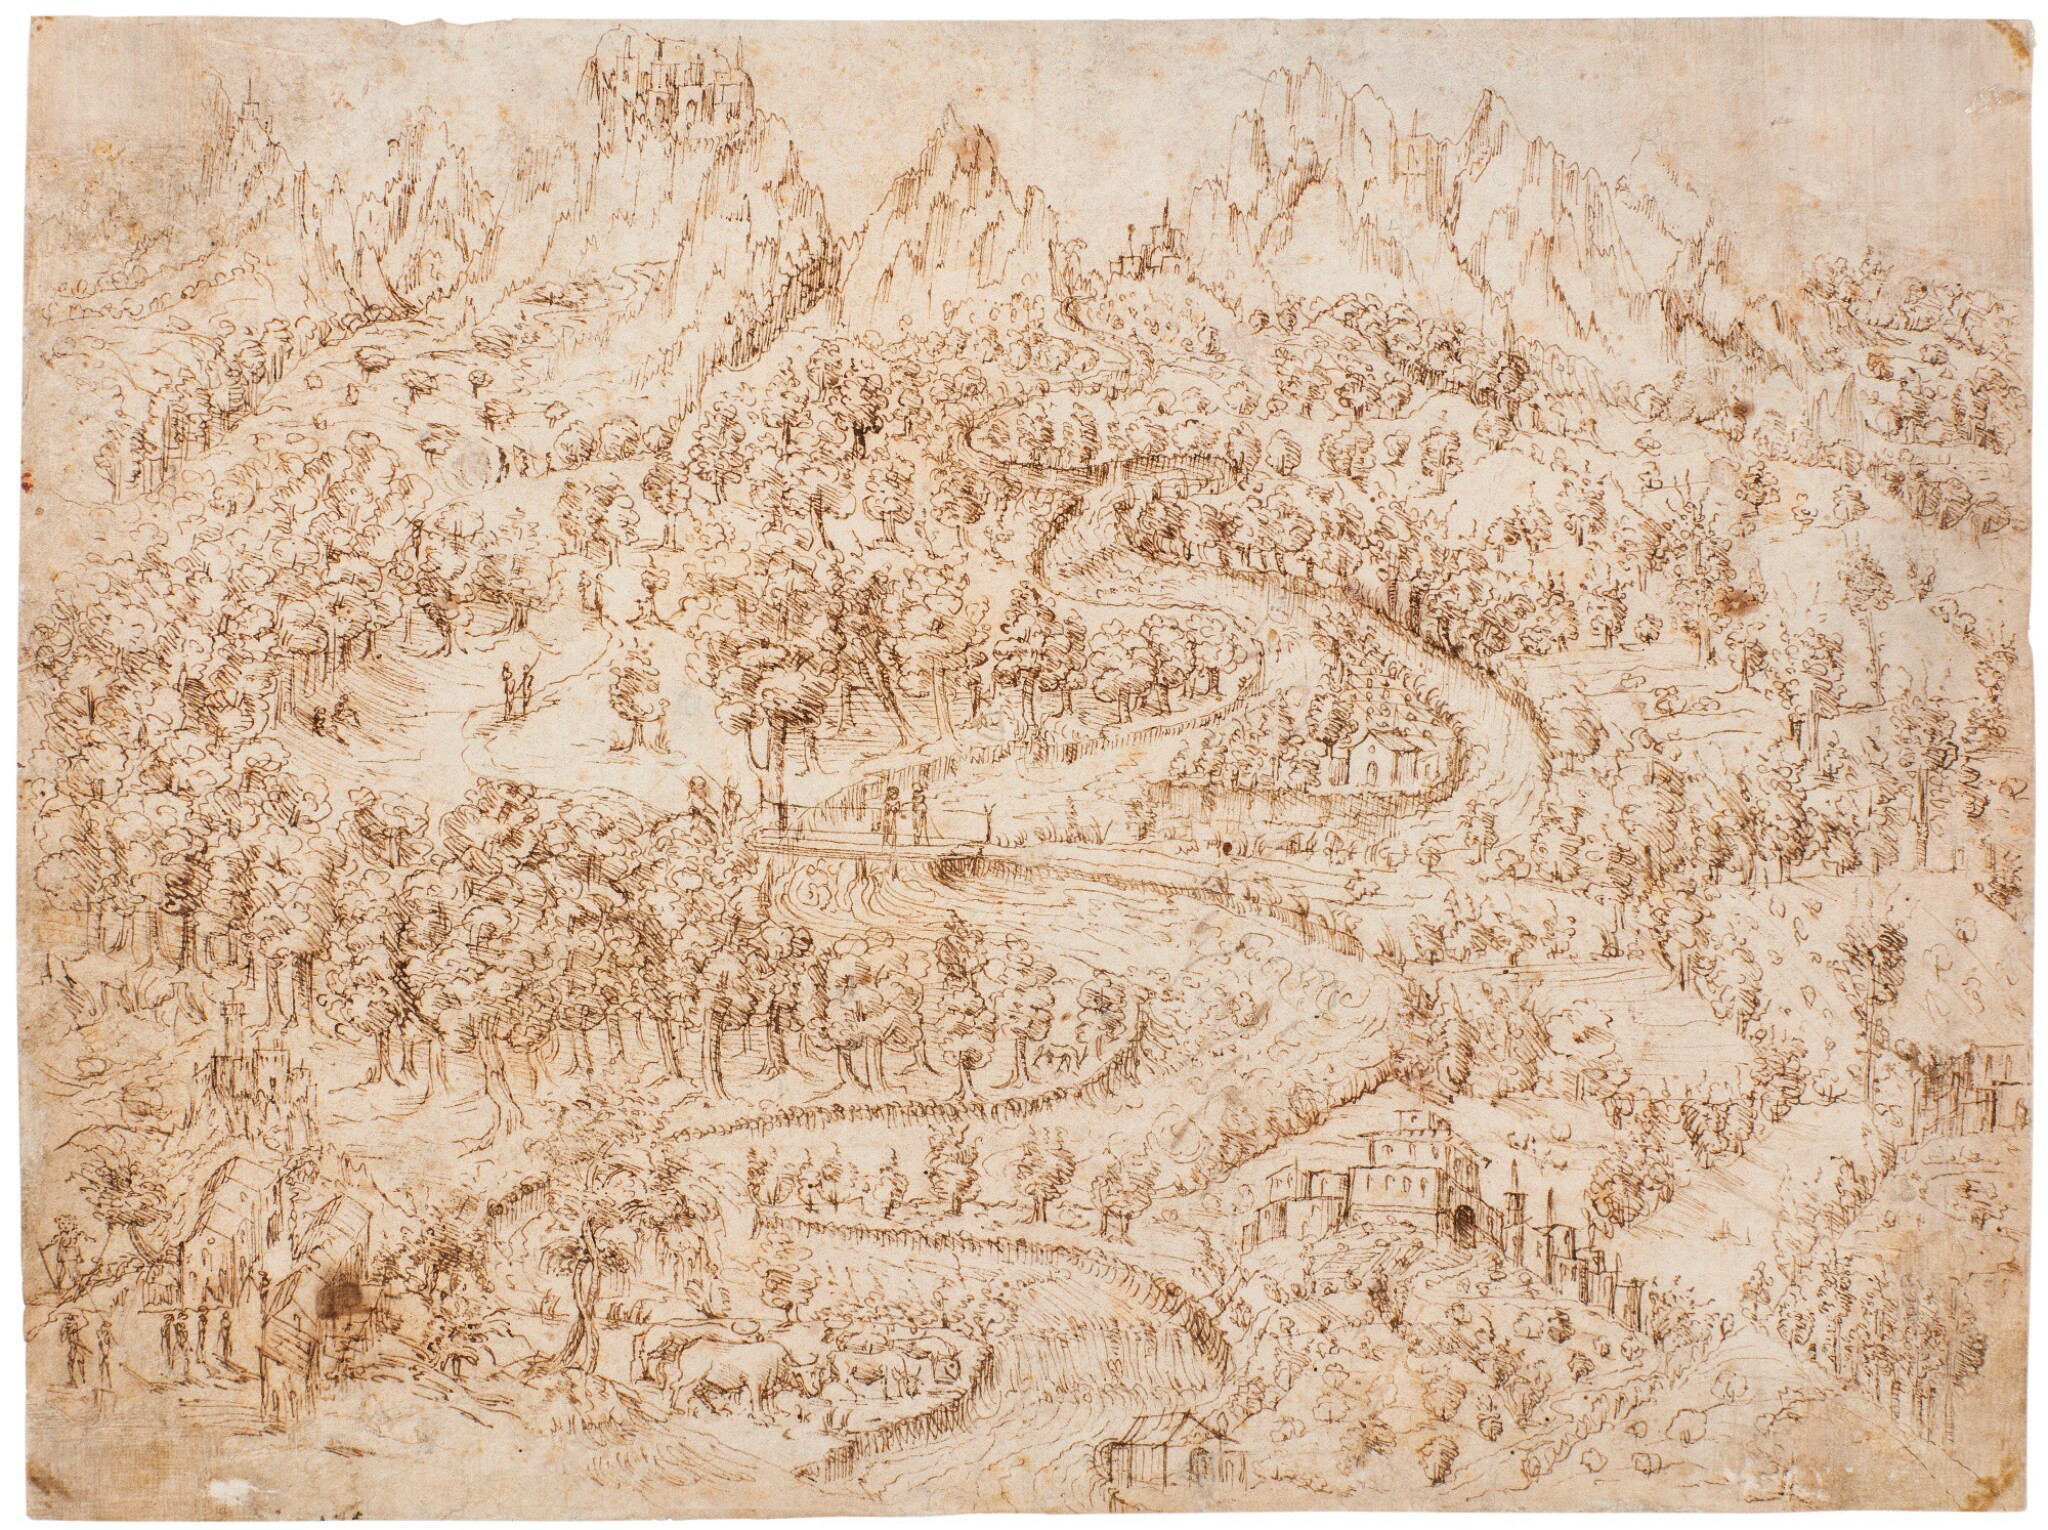 GERMAN SCHOOL, EARLY/MID-16TH CENTURY | BIRD'S EYE VIEW OF A RUGGED, WOODED RIVER LANDSCAPE